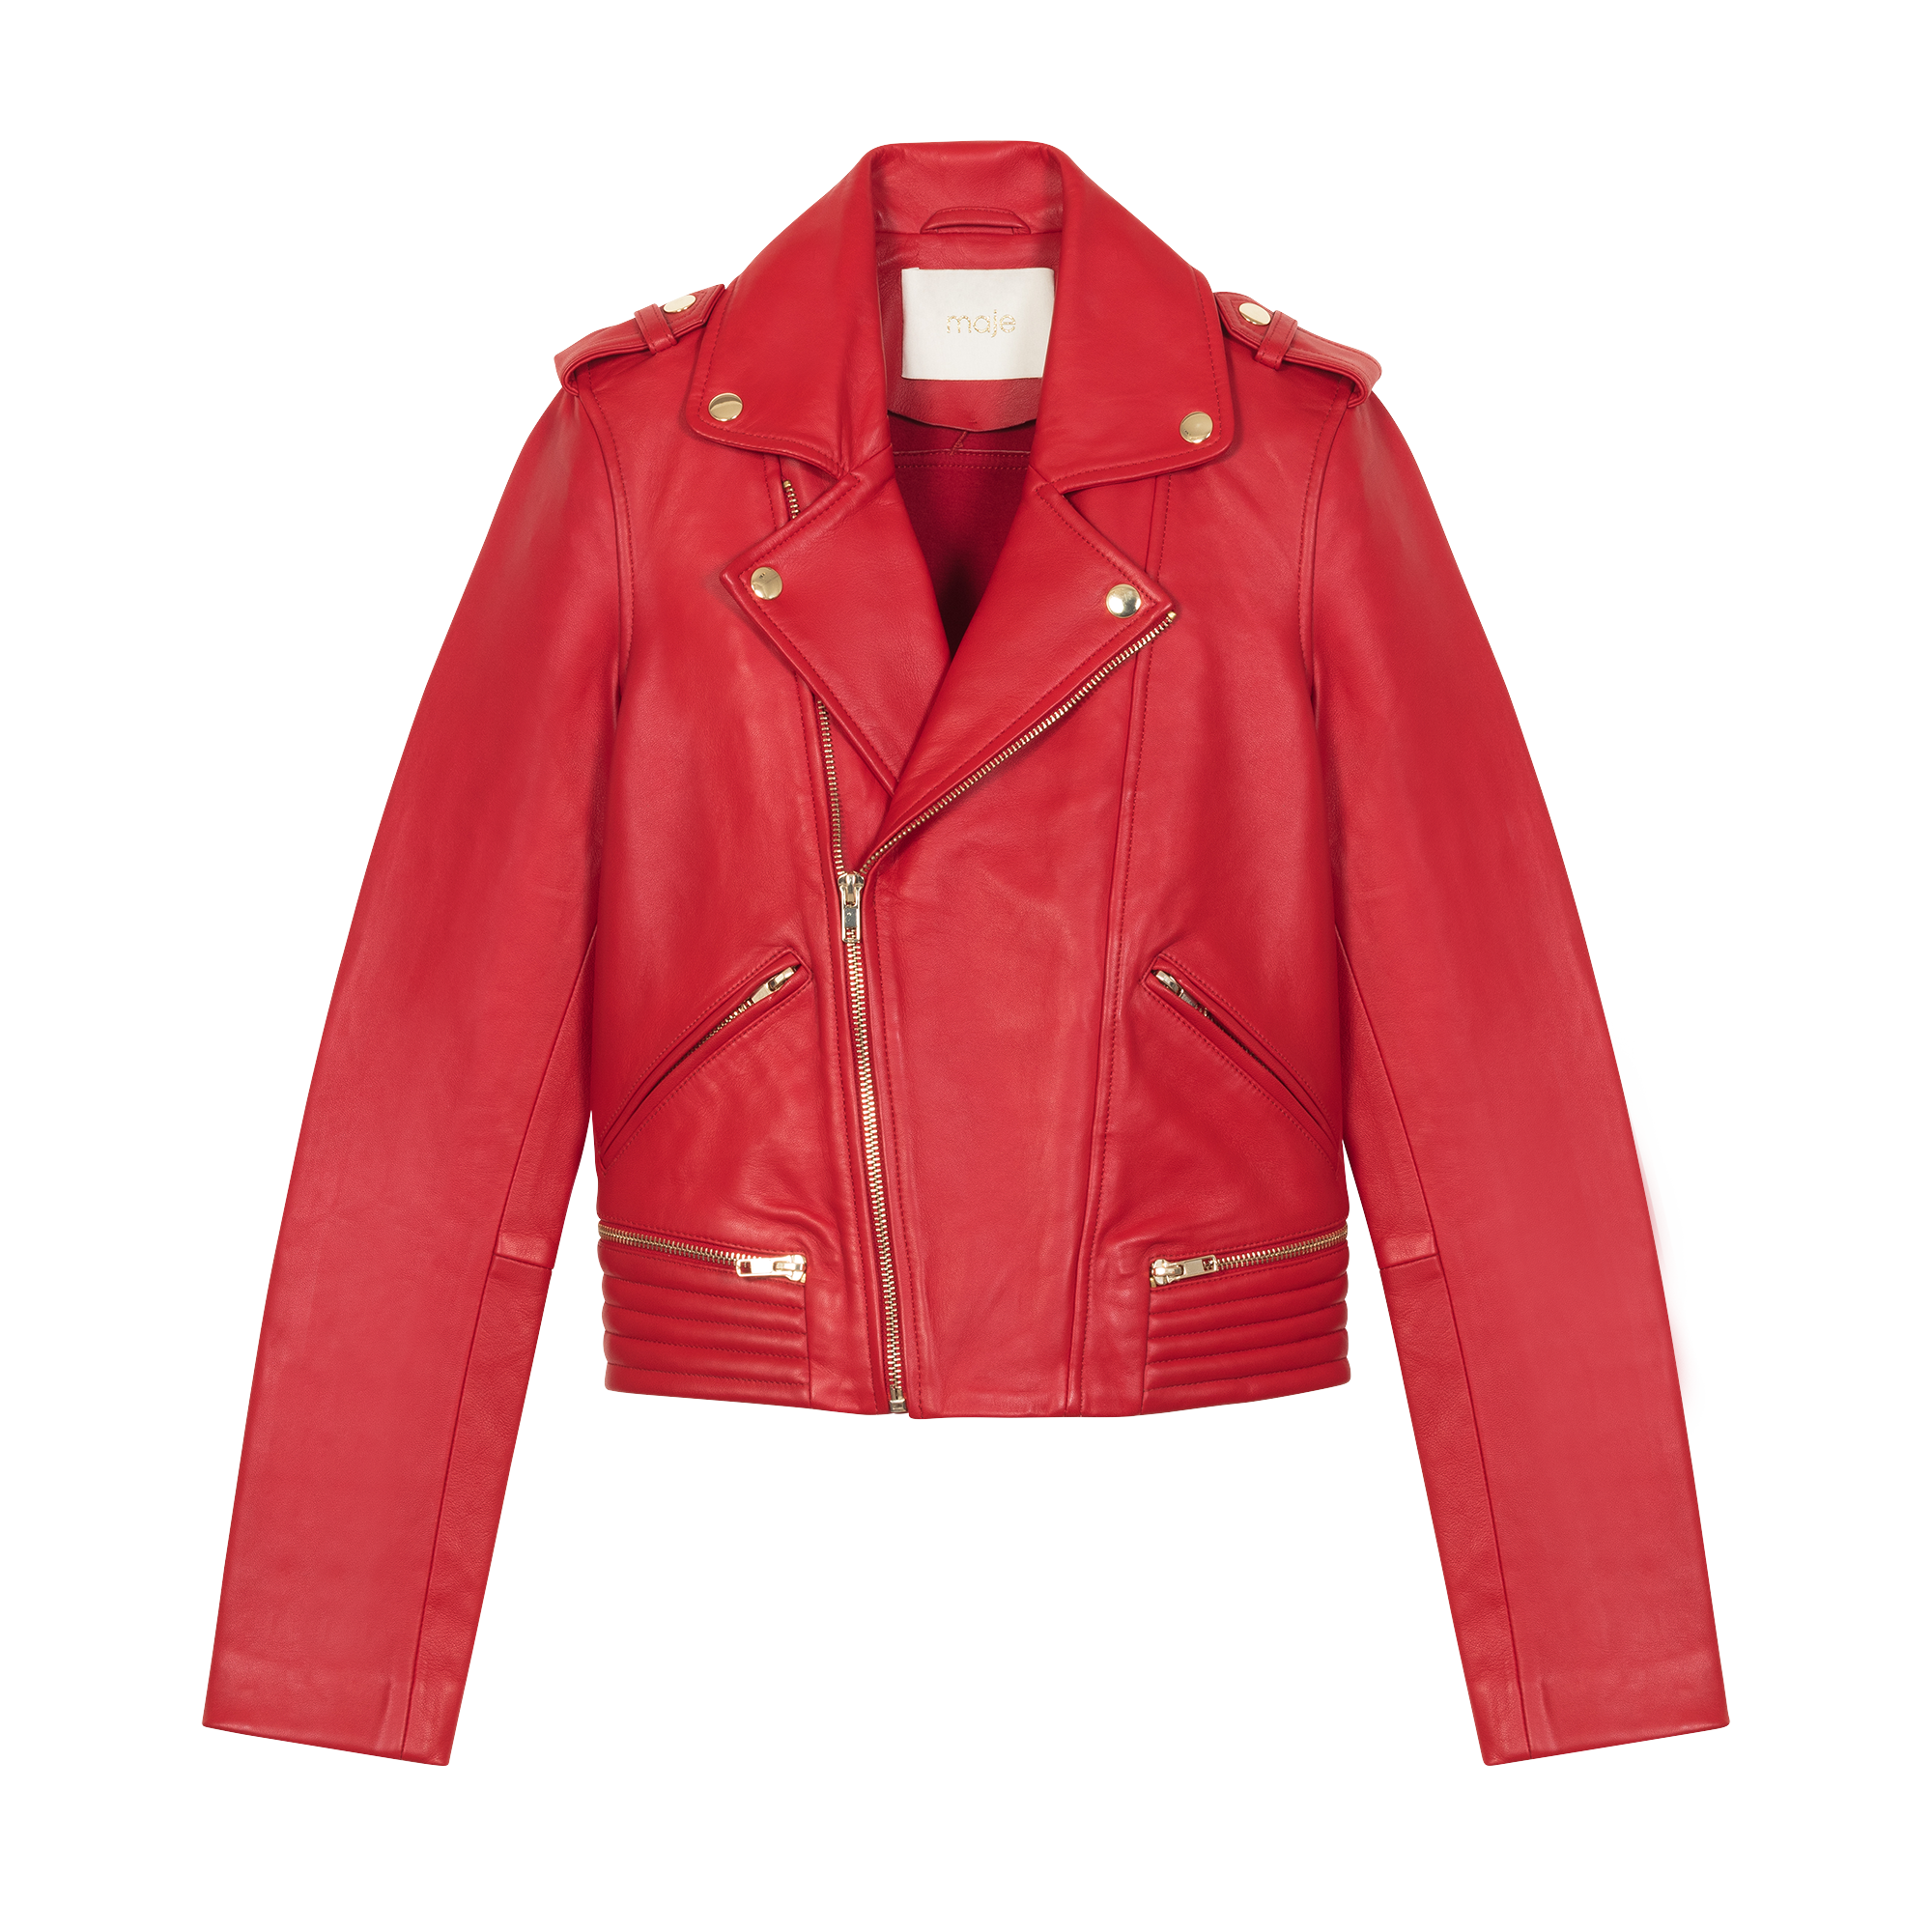 Perfecto leather jacket - Coats & Jackets - MAJE